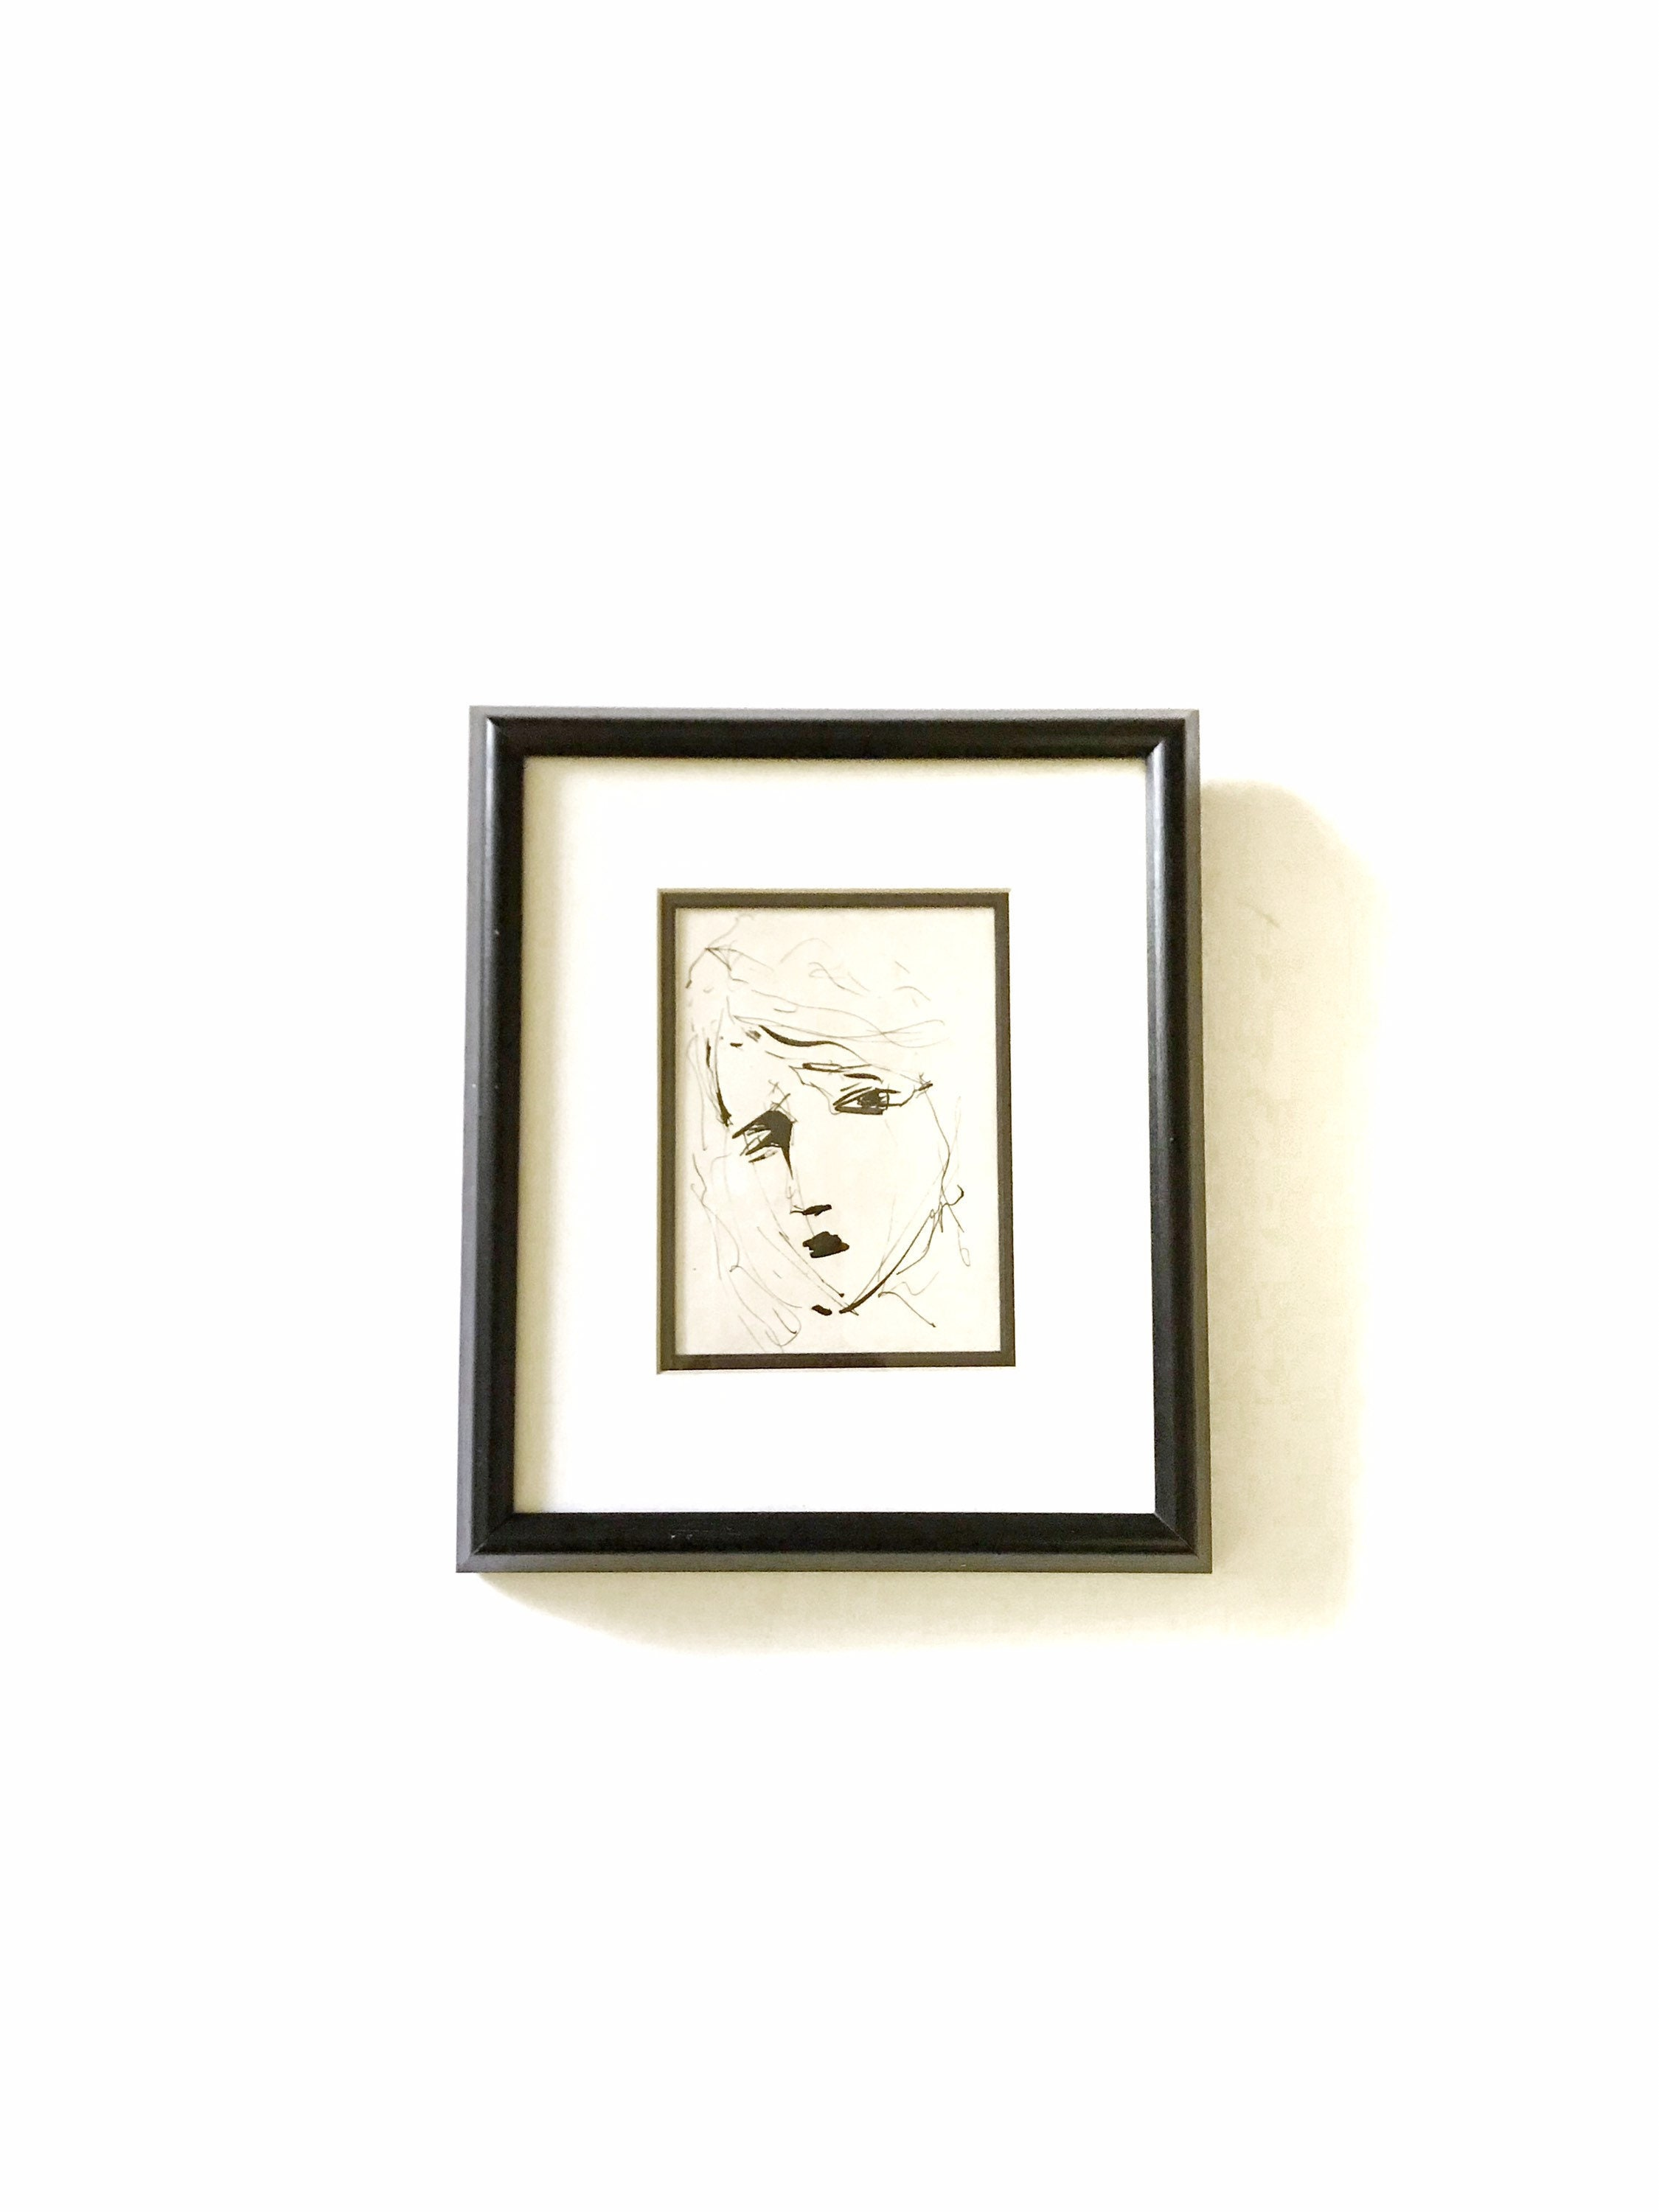 Vintage Framed India Ink Drawing Painting Black and White Flapper Girl Woman Portrait